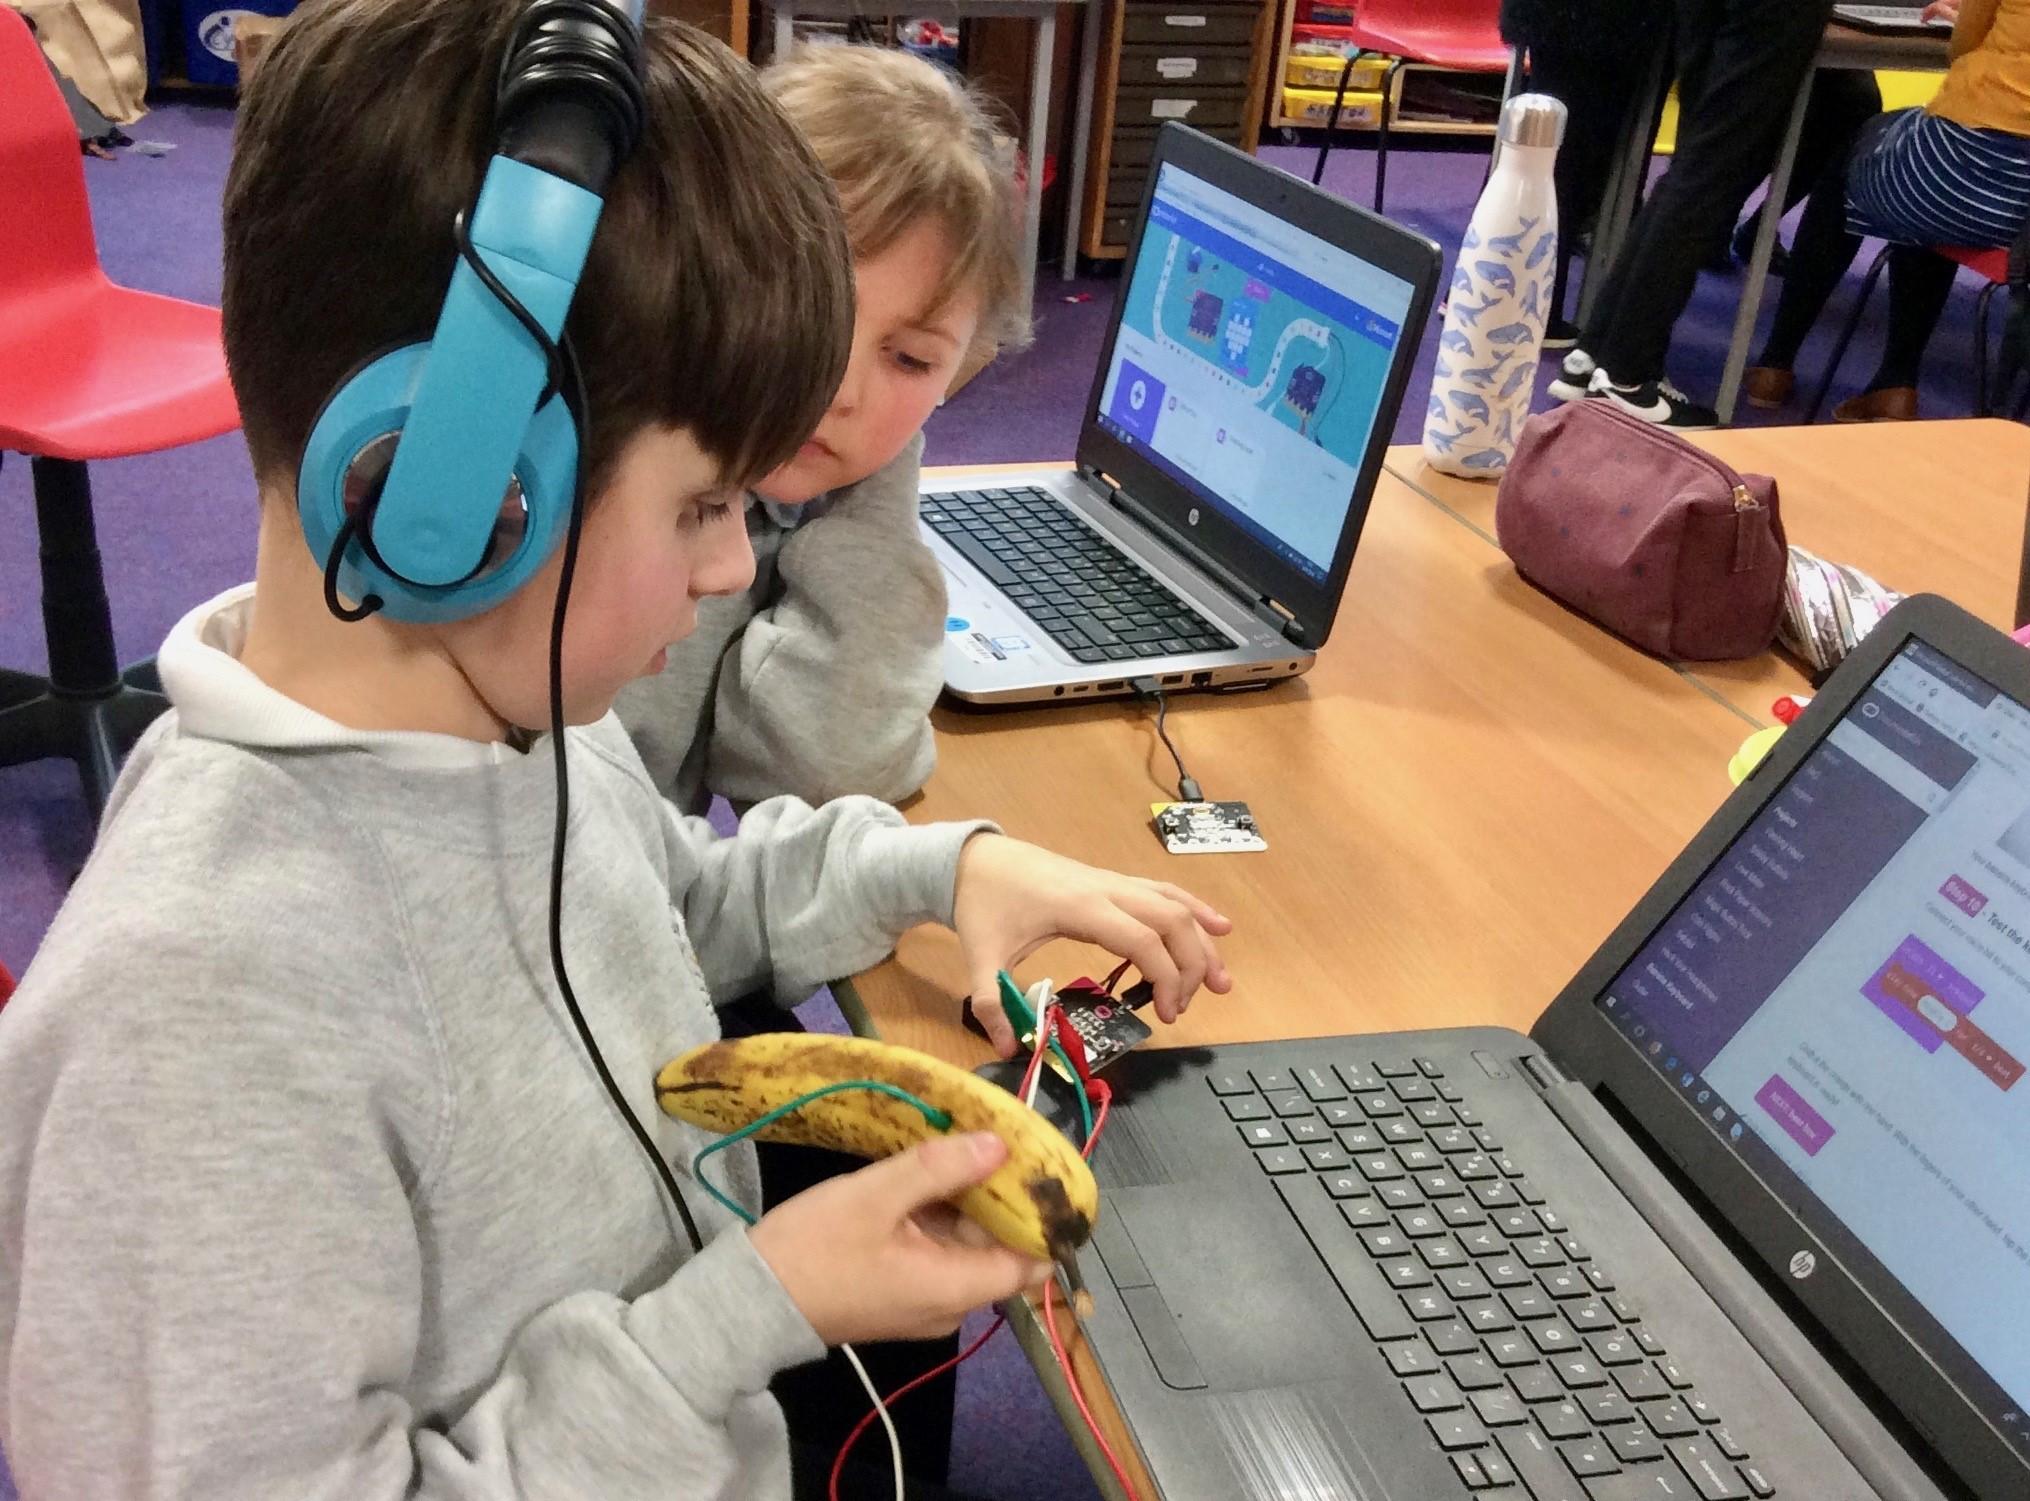 'Resilient Robotics' at Port Ellen Primary School is teaching the next generation how to code